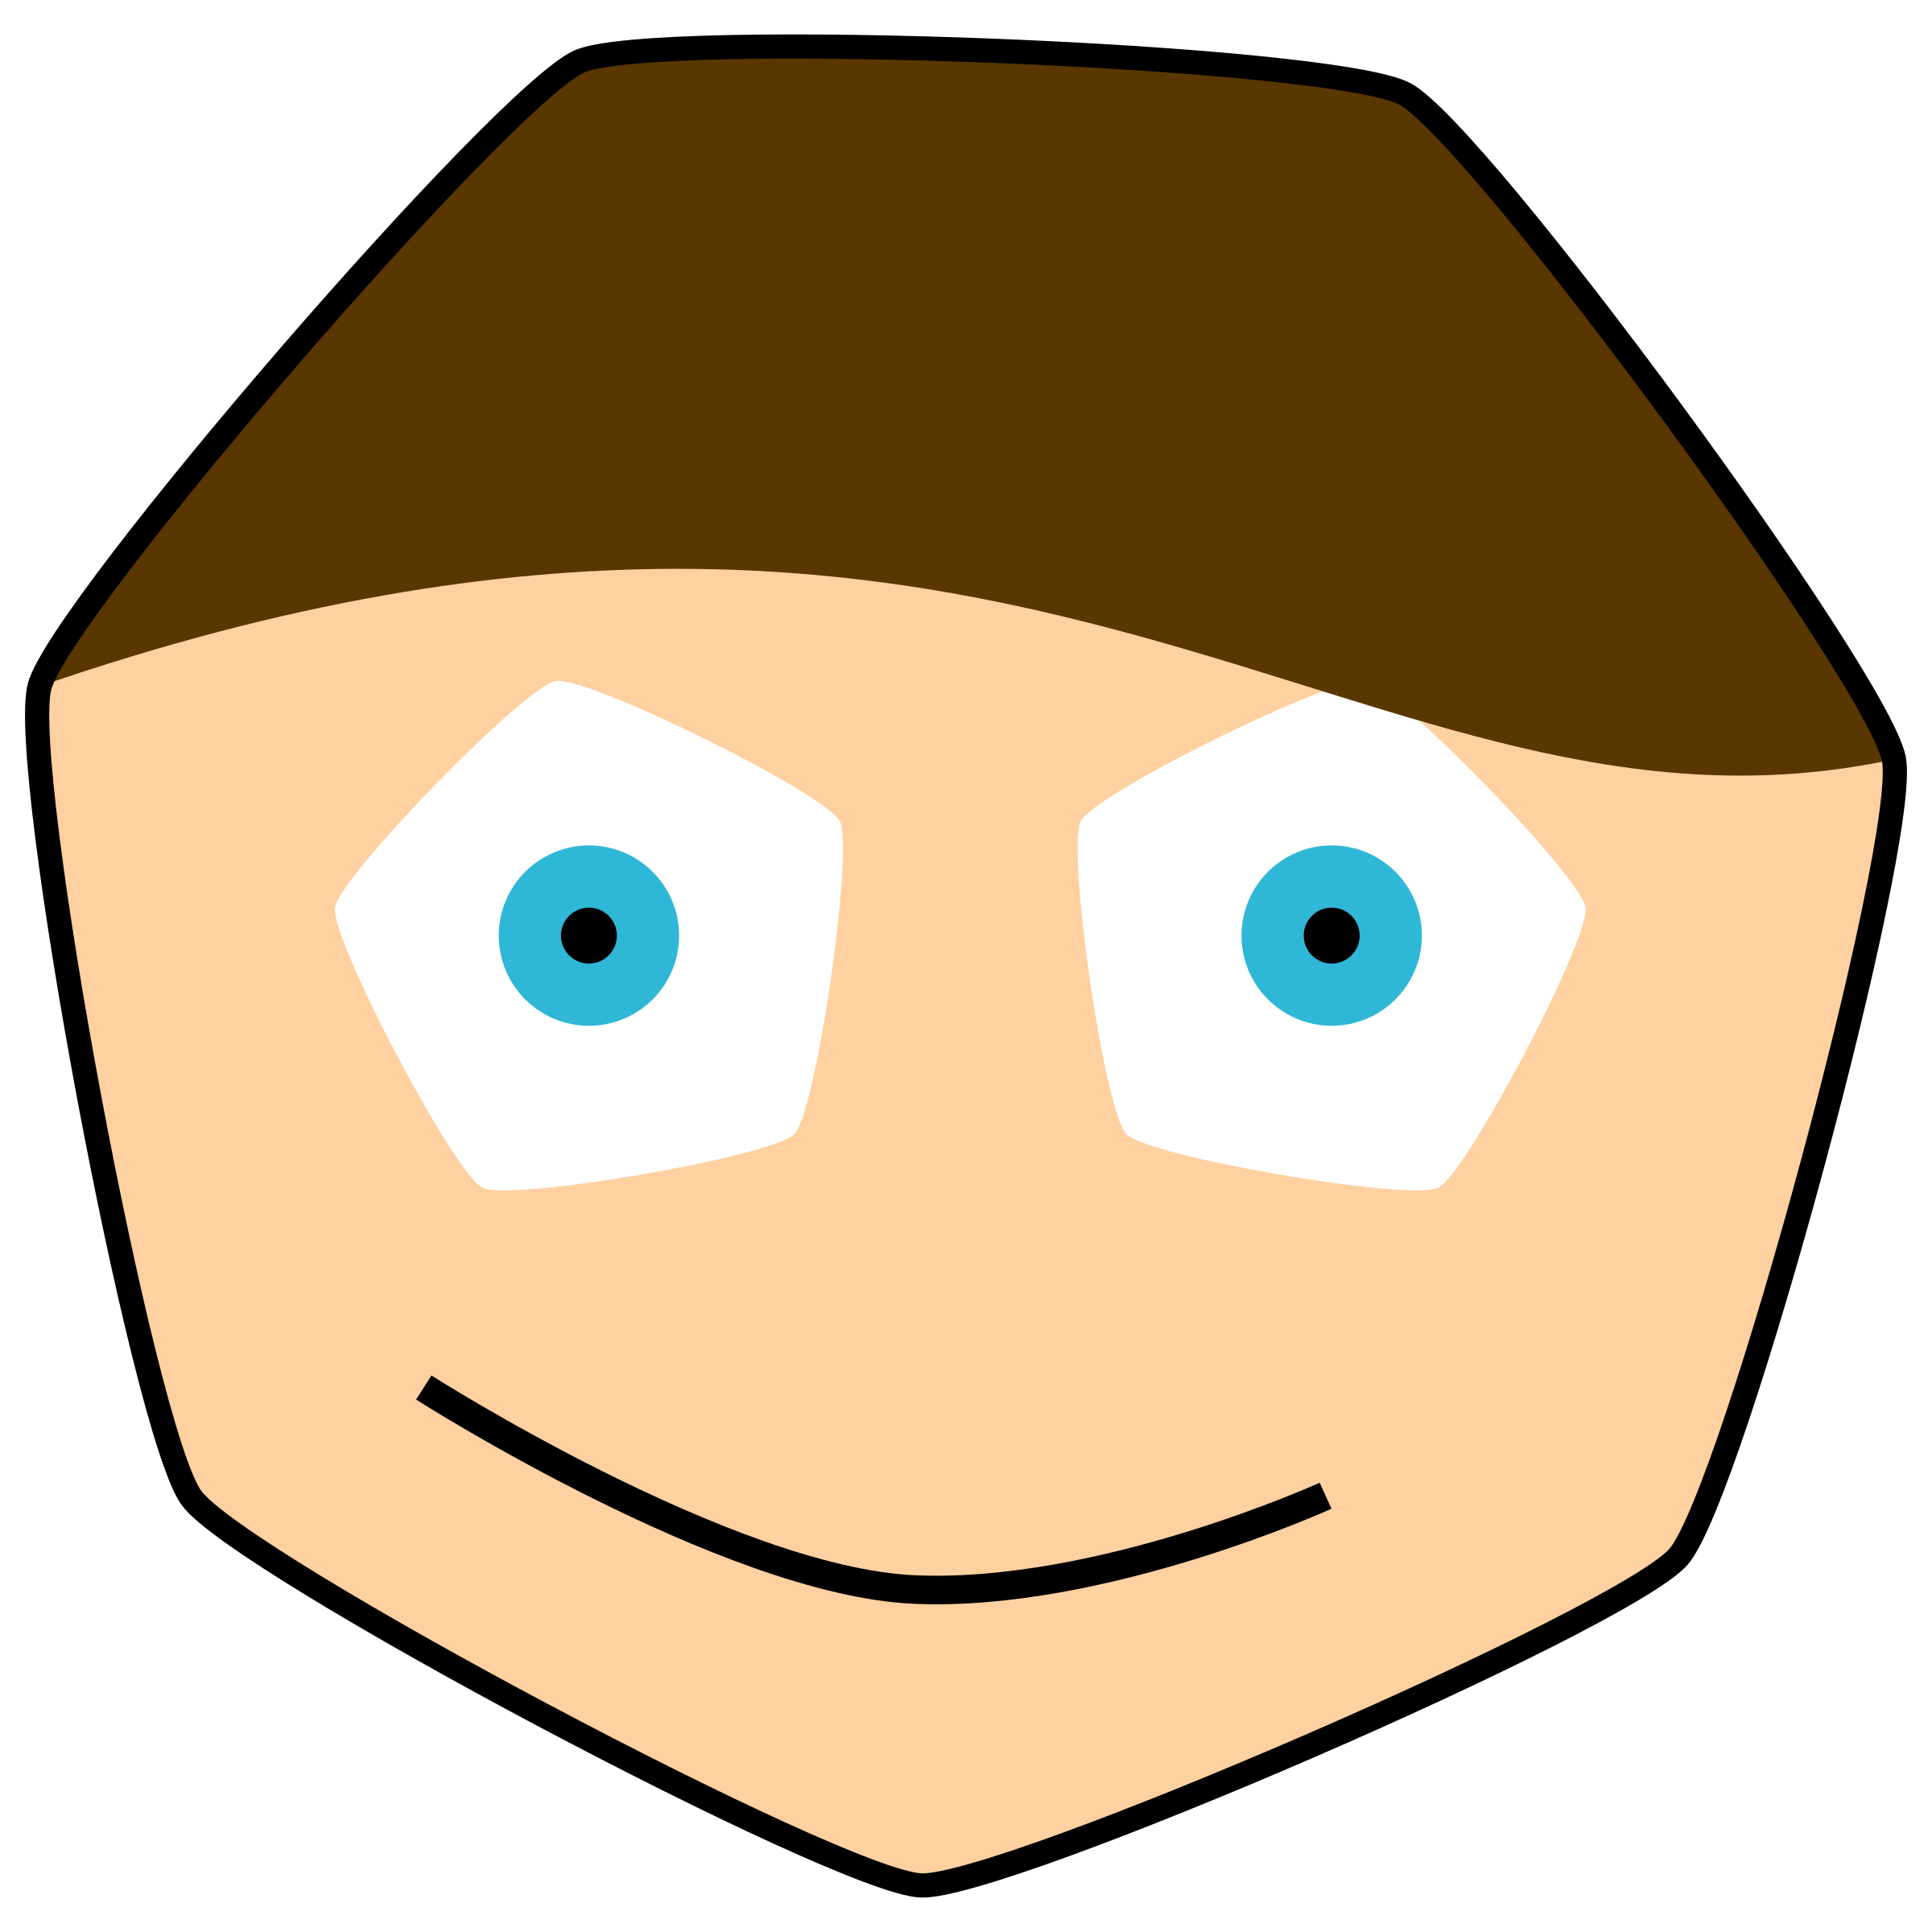 Polygon big image png. Number 1 clipart face